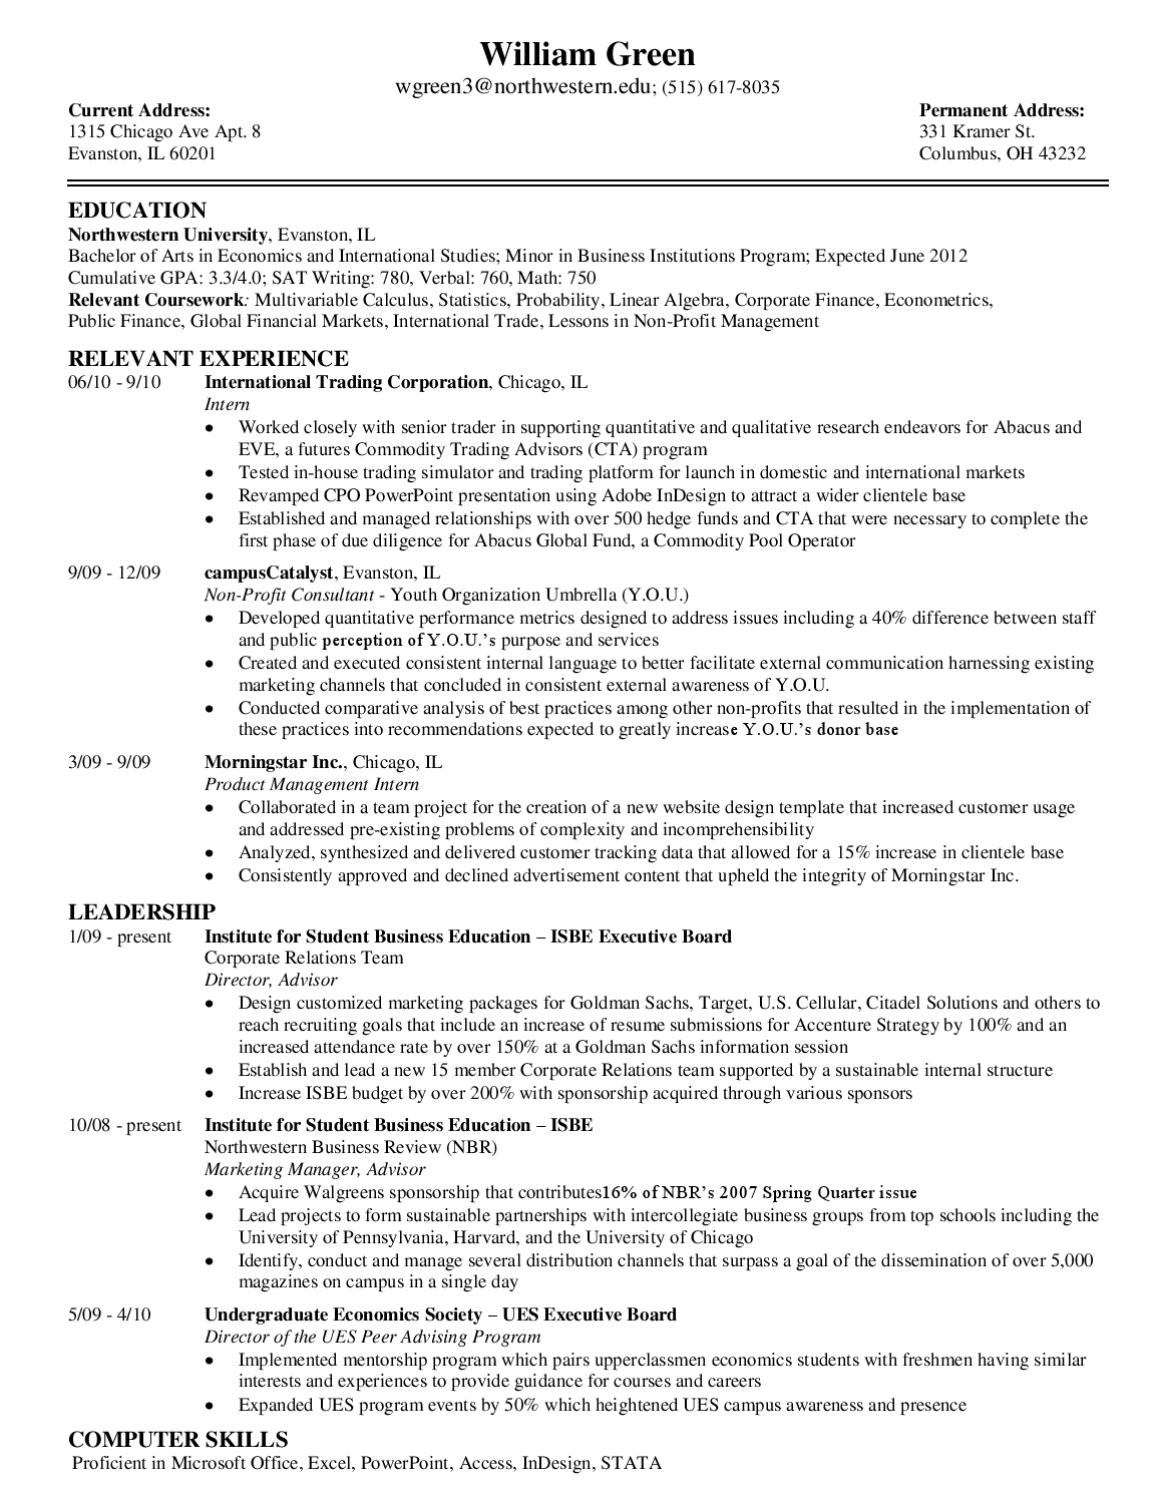 Consulting Resume Sample by Northwestern University Career Services